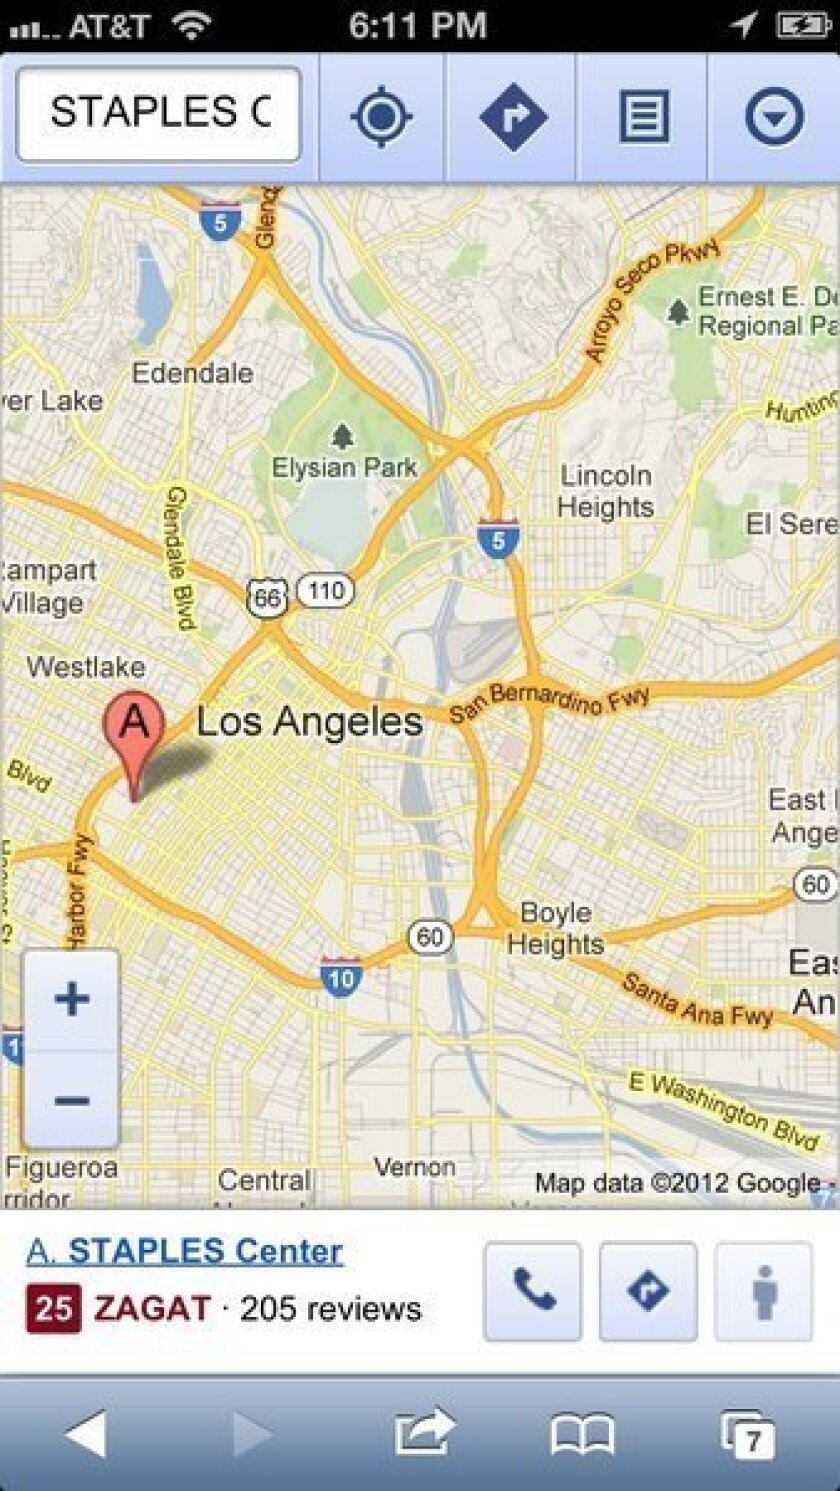 Google Maps is returning to iPhone, iPad tonight, report ... on google maps north platte, google maps dubai, google maps pensacola, google maps los santos, google maps northeast usa, google maps catskills, google maps philly, google maps racine, google maps uk, google maps brownsville, google maps china, google maps eureka, google maps california, google maps pearland, google maps mira loma, google maps paris, google maps logo, google maps savannah, google maps mombasa, google maps car,